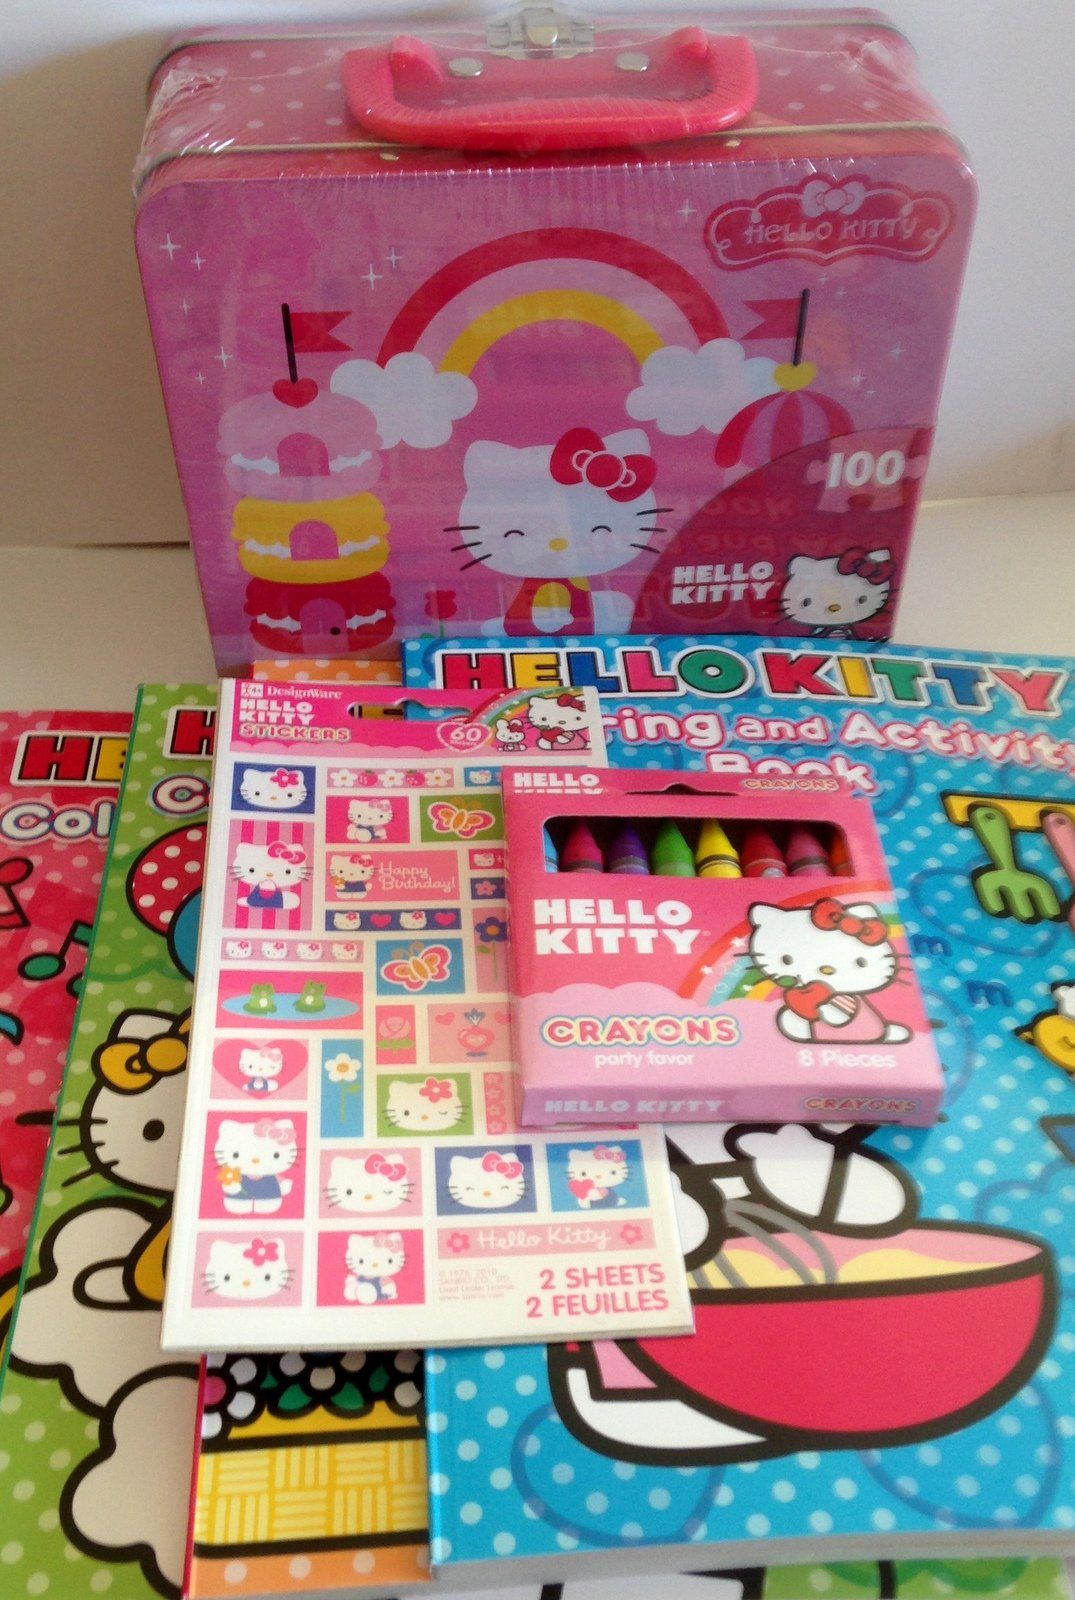 Gift Set 4 Hello Kitty Jumbo Coloring Activity Books Crayons Stickers 100pc Puzzle